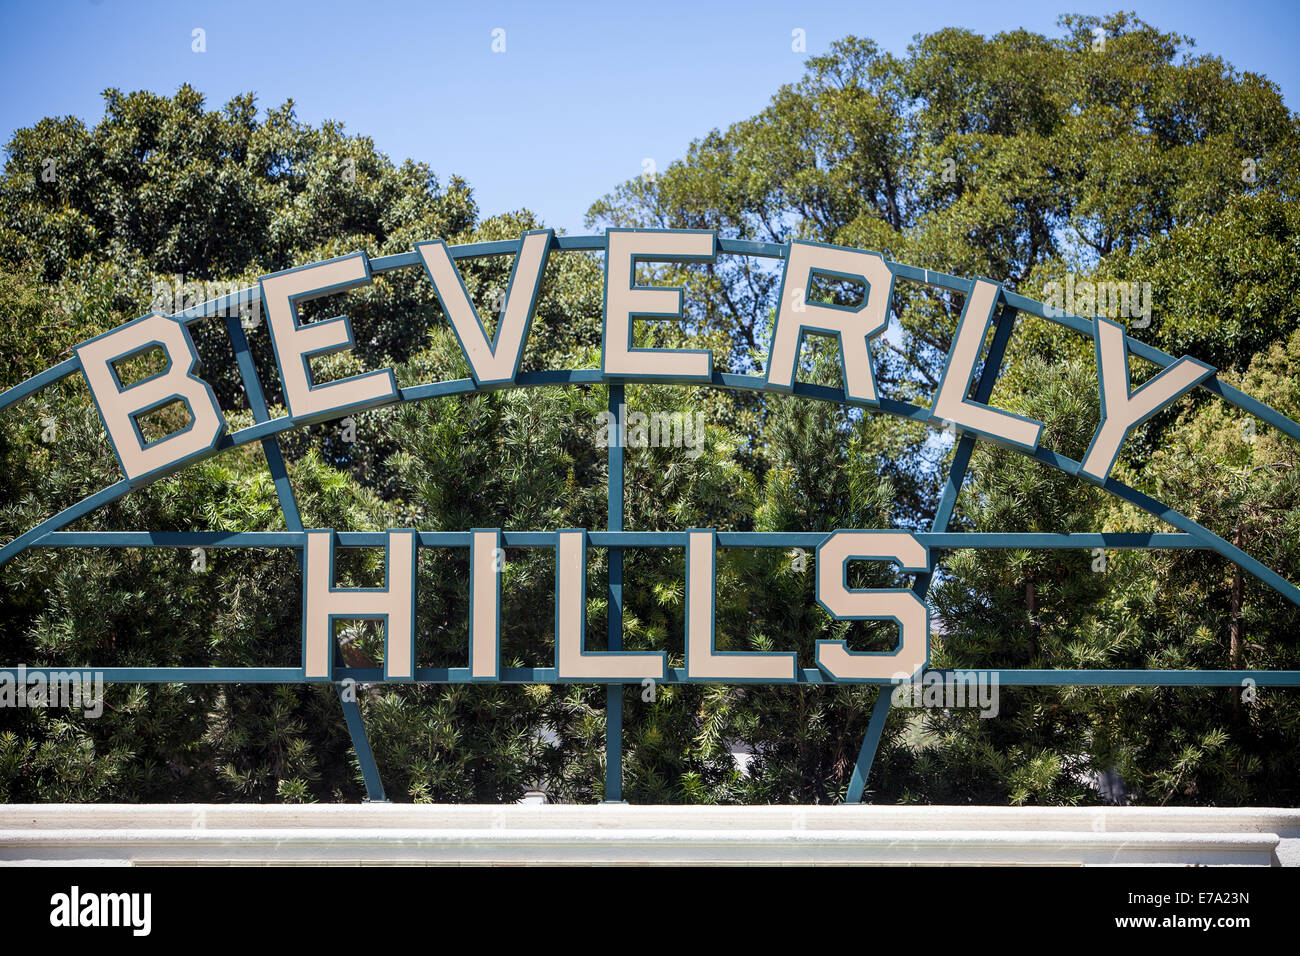 The Beverly Hills sign. - Stock Image